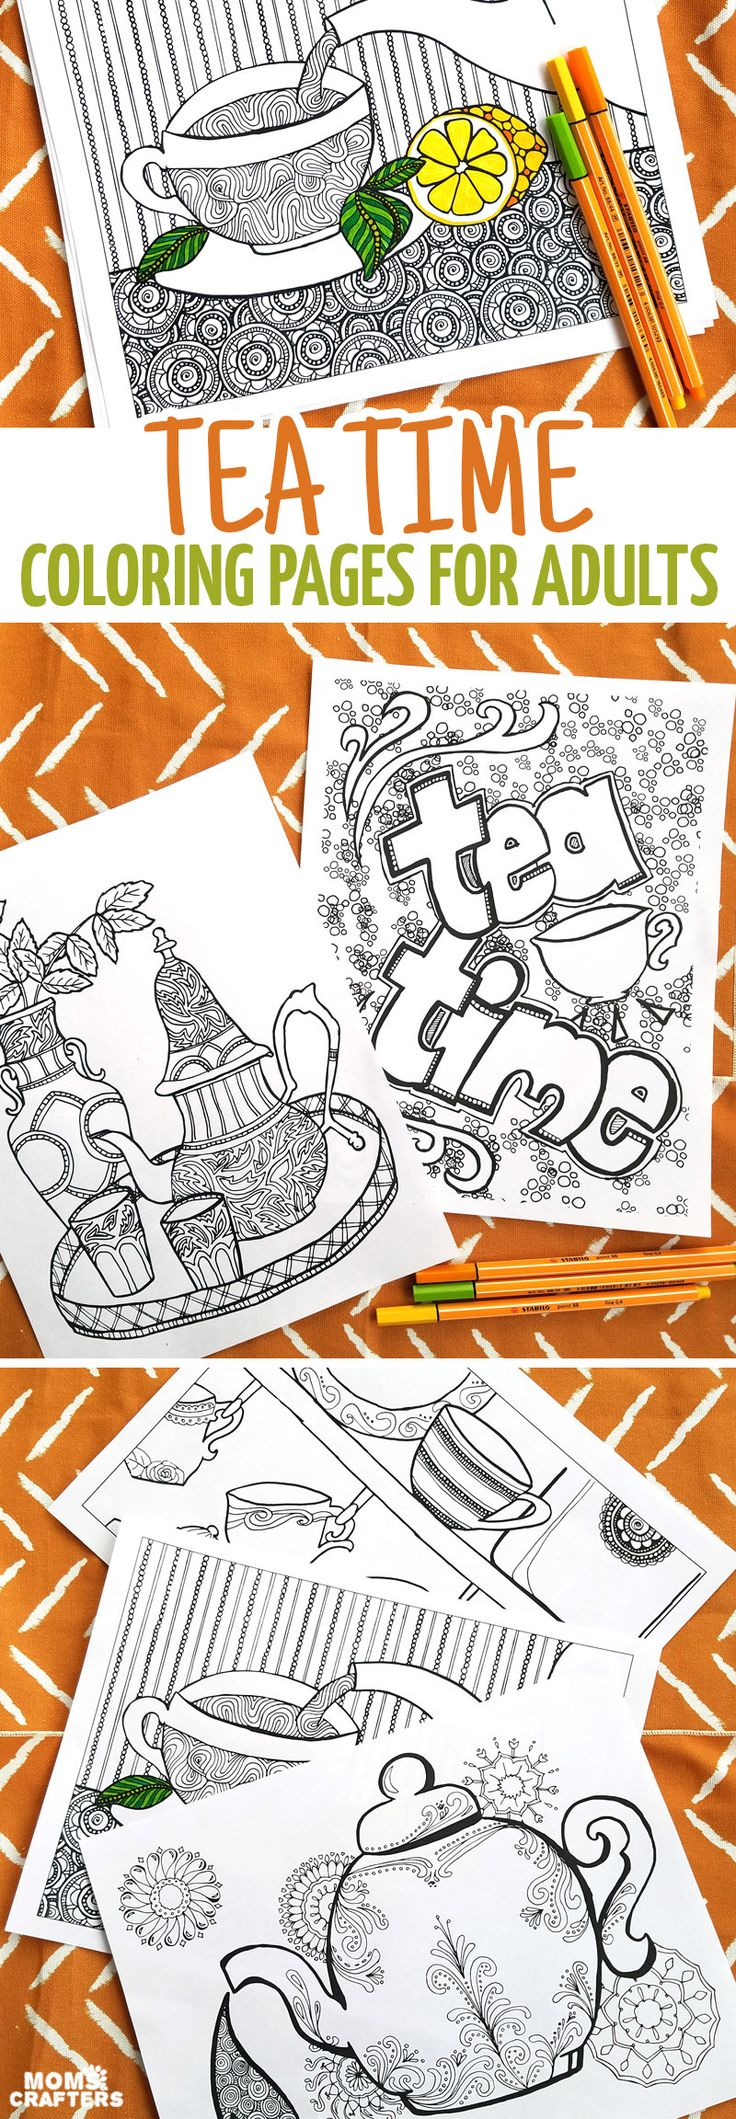 435 best coffee tea coloring pages for adults images on